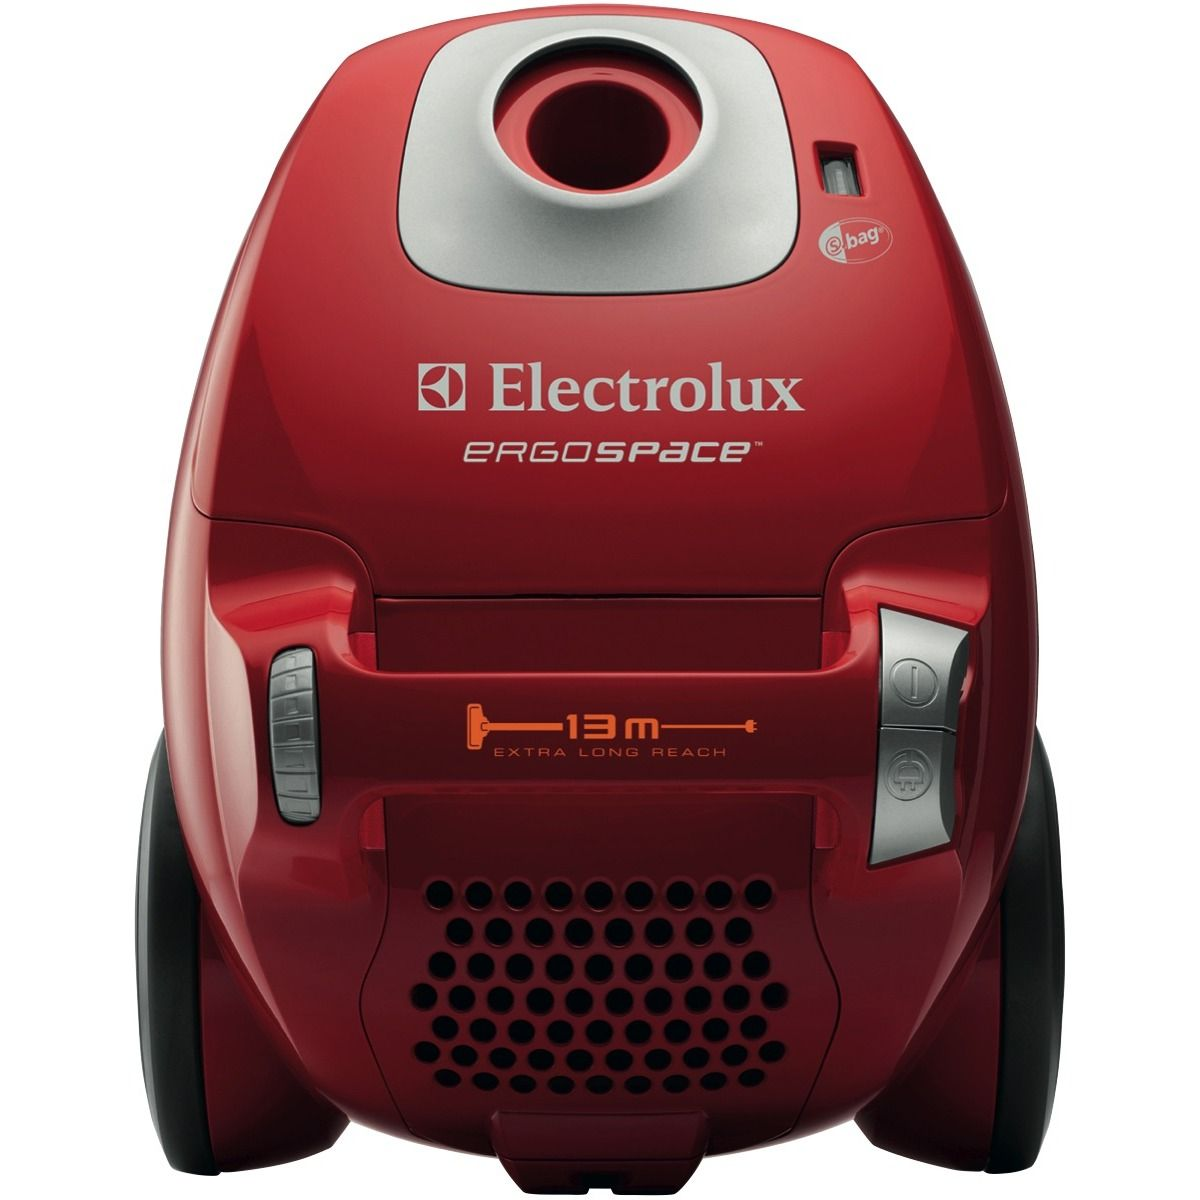 Good Vacuum For Carpet And Floors